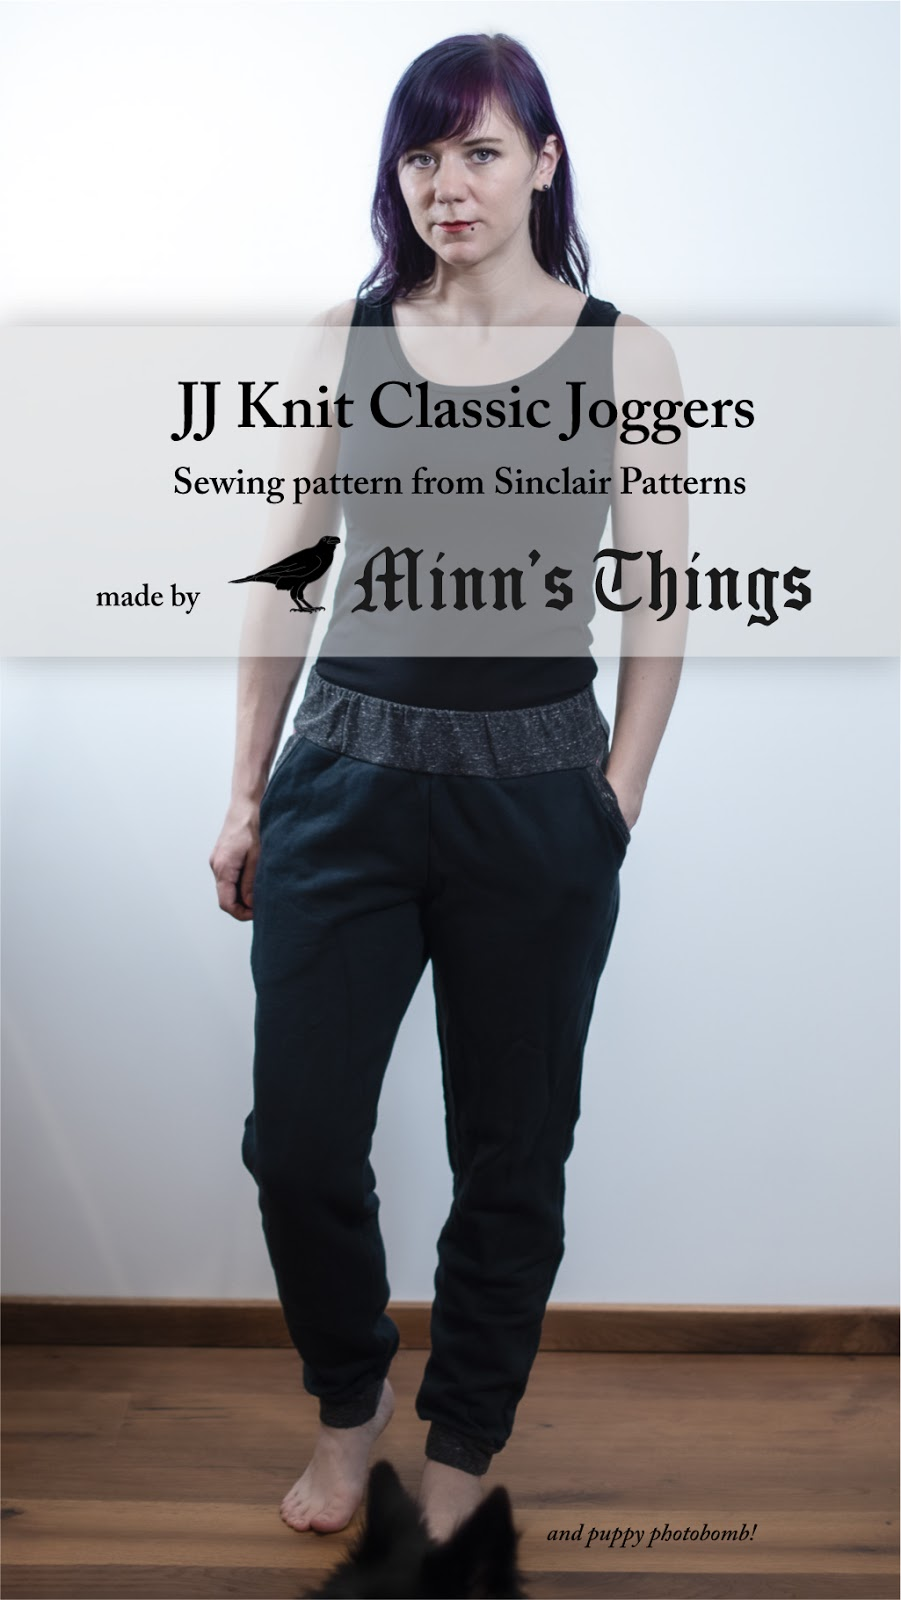 jj knit classic joggers sinclair sewing patterns diy minn's things cozy pants pinterest